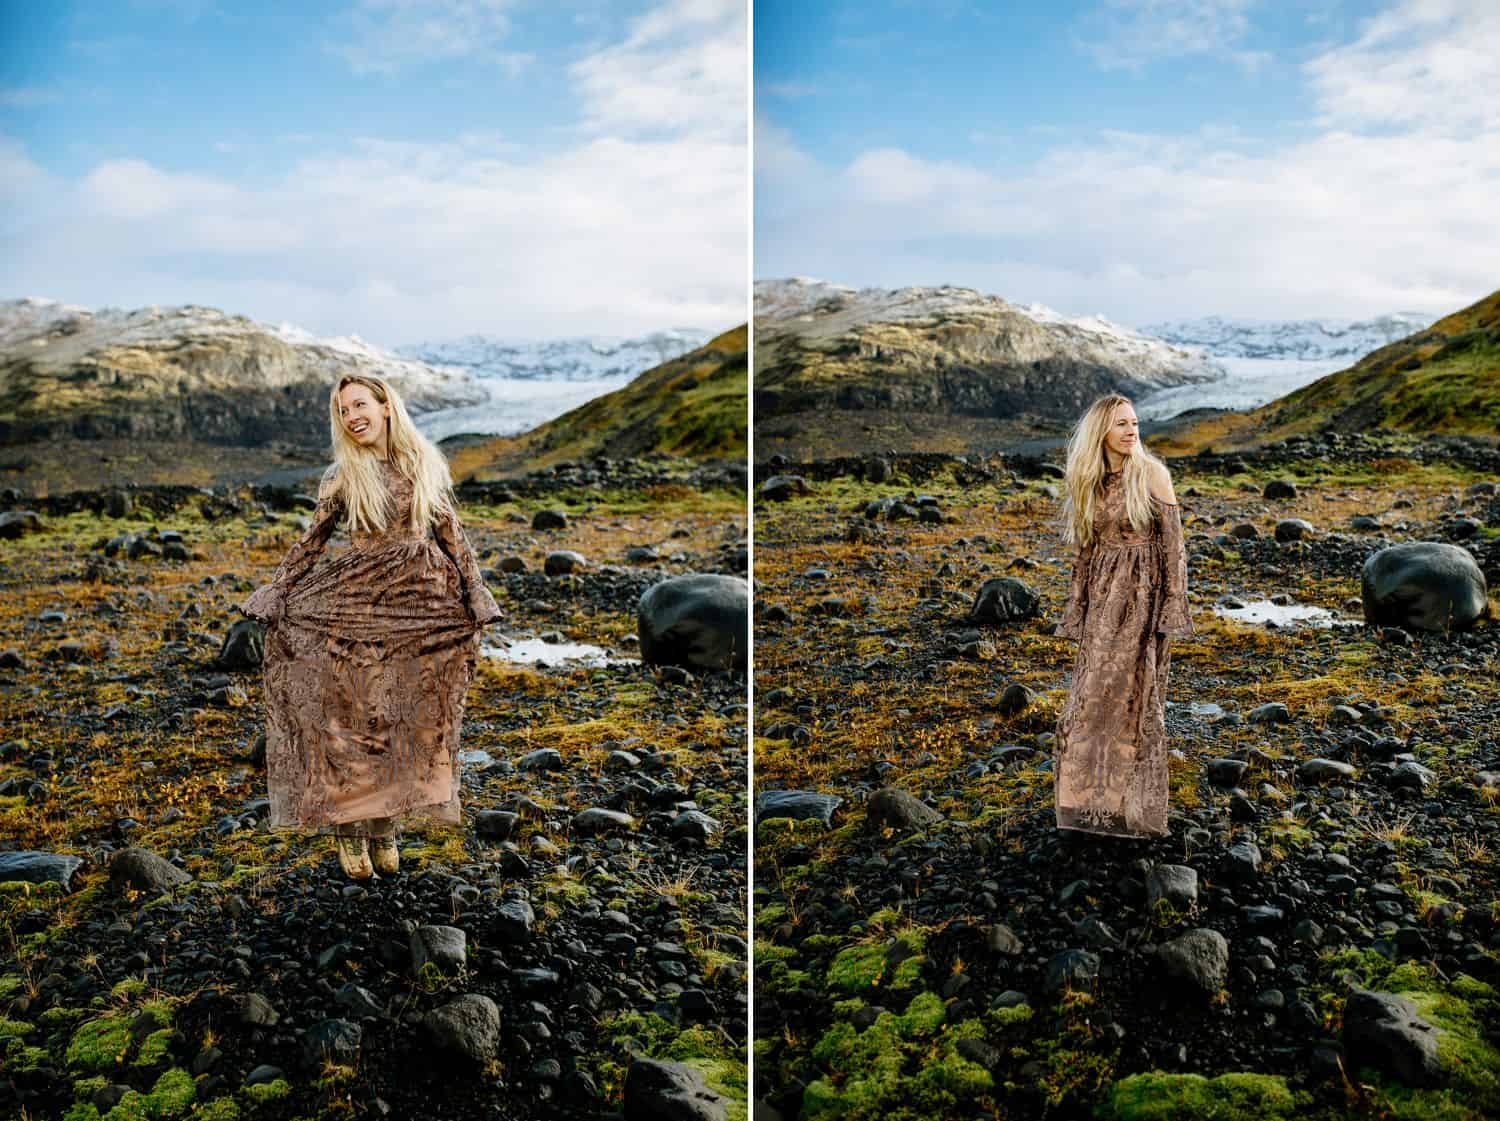 Woman in a brown lace dress stands in the Icelandic landscape